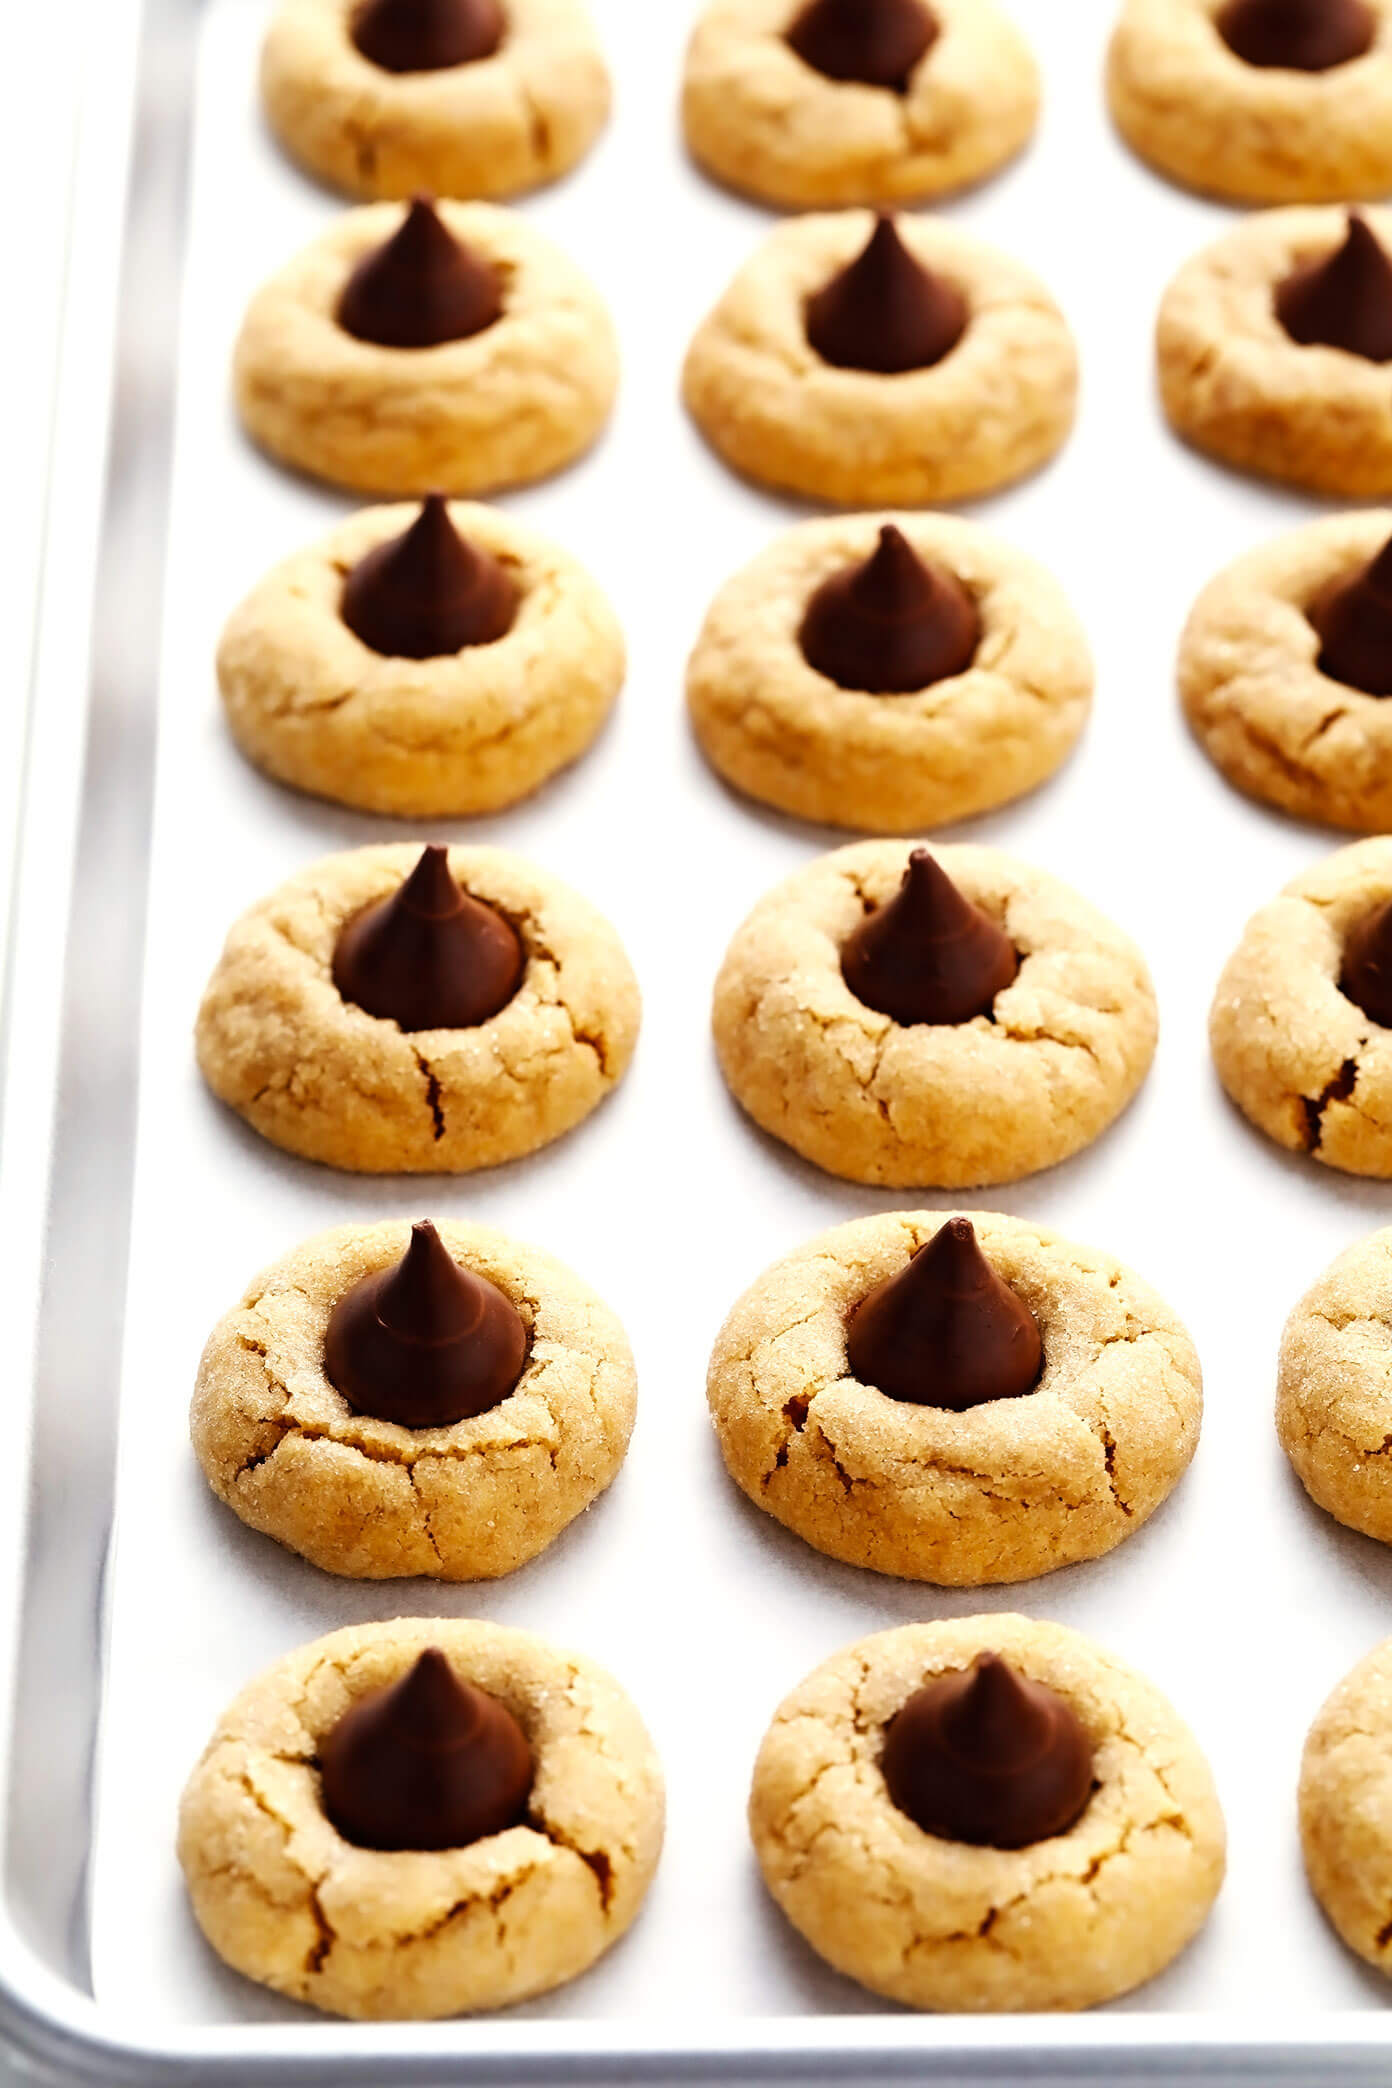 Peanut Butter Blossoms on Cookie Sheet